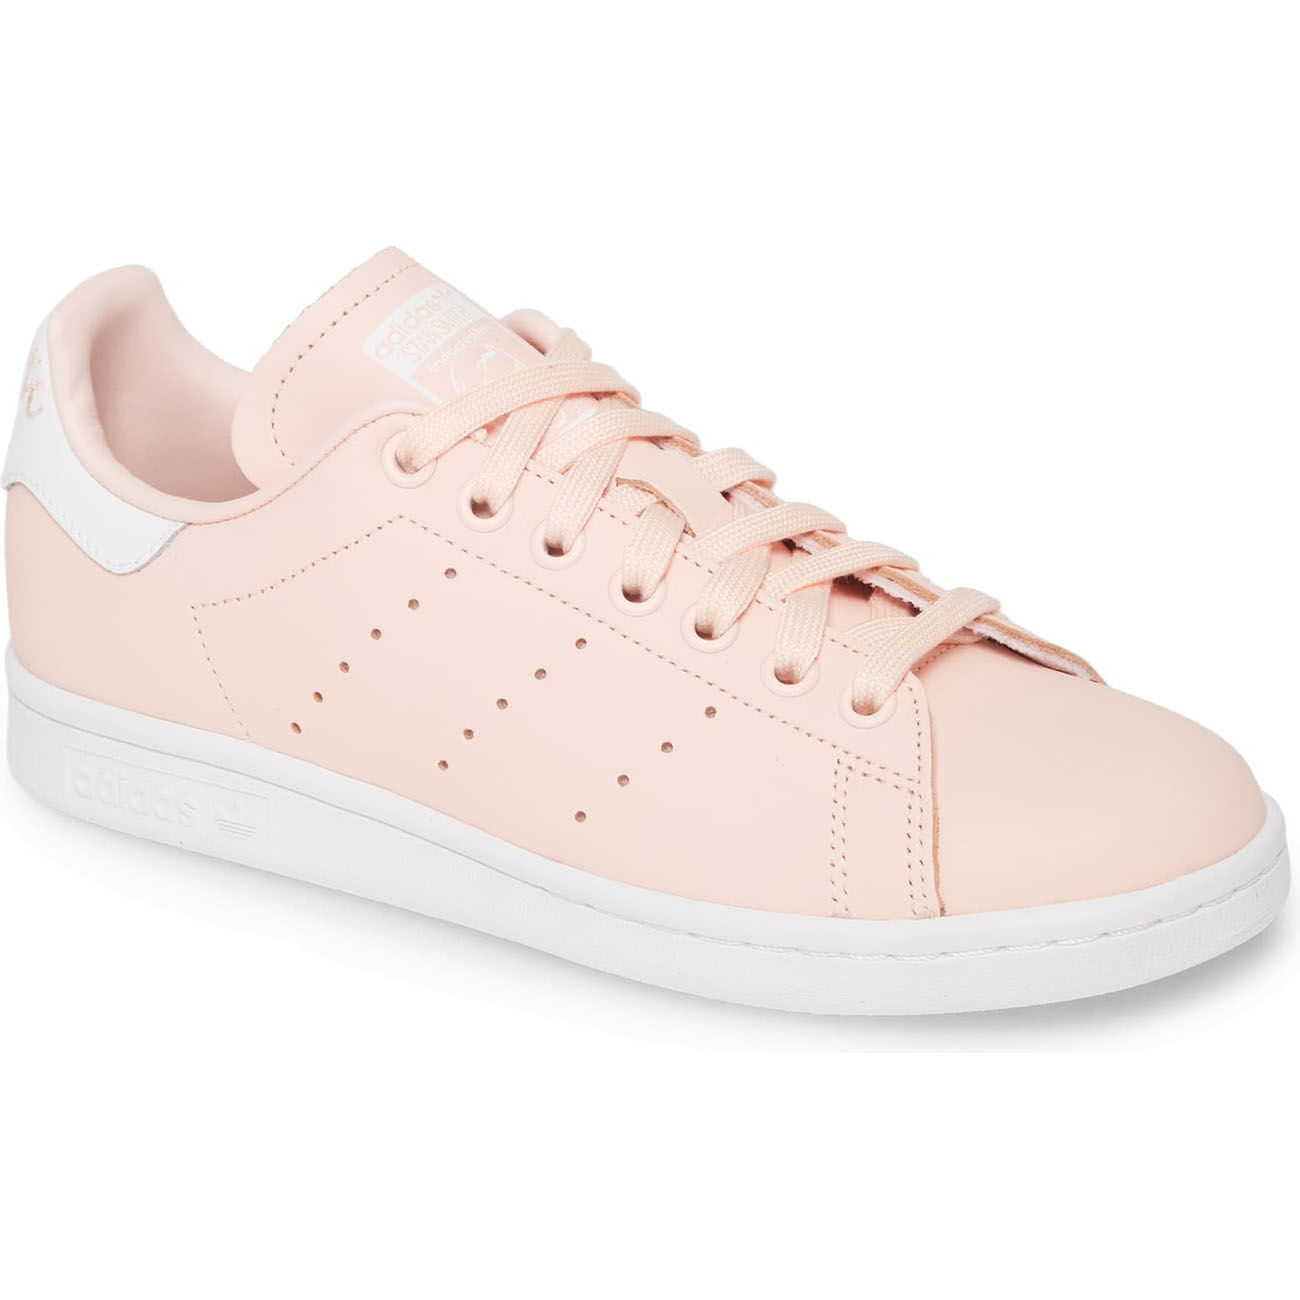 Stan Smith Sneaker in Blush Pink at Nordstrom